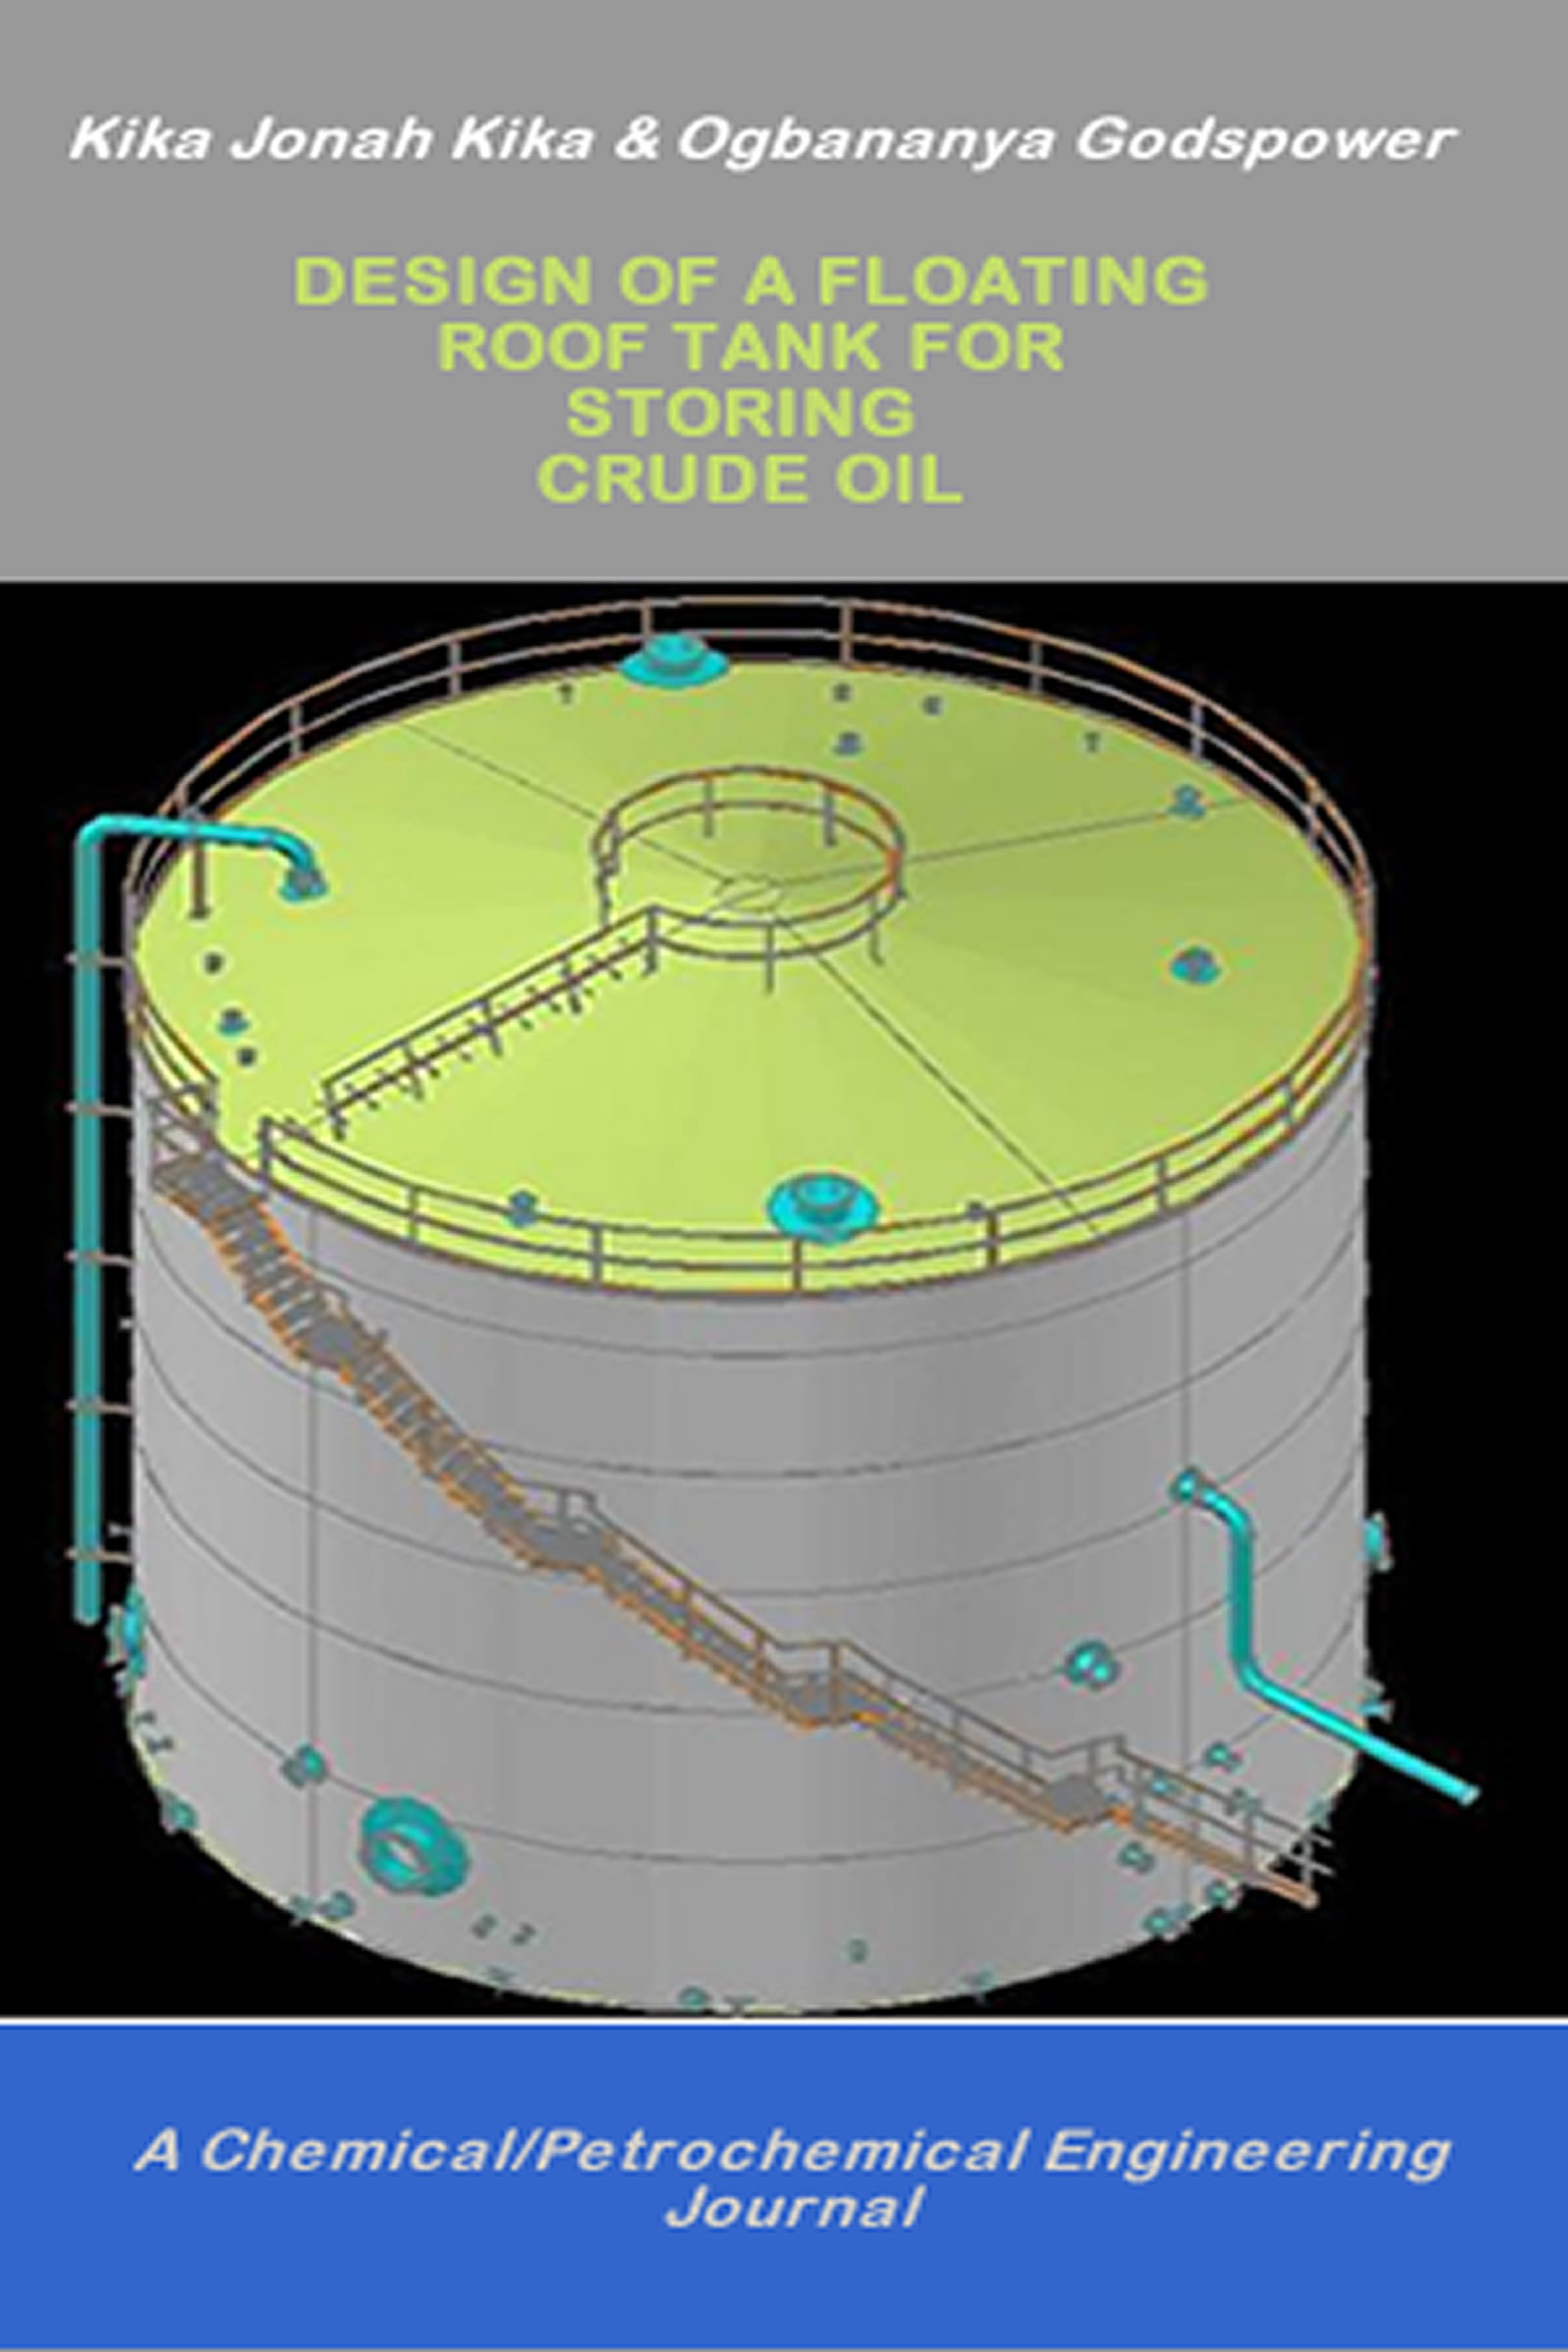 Design Of A Floating Roof Tank For Storing Crude Oil Or Petrochemicals, an  Ebook by Jonah Kika, Sr